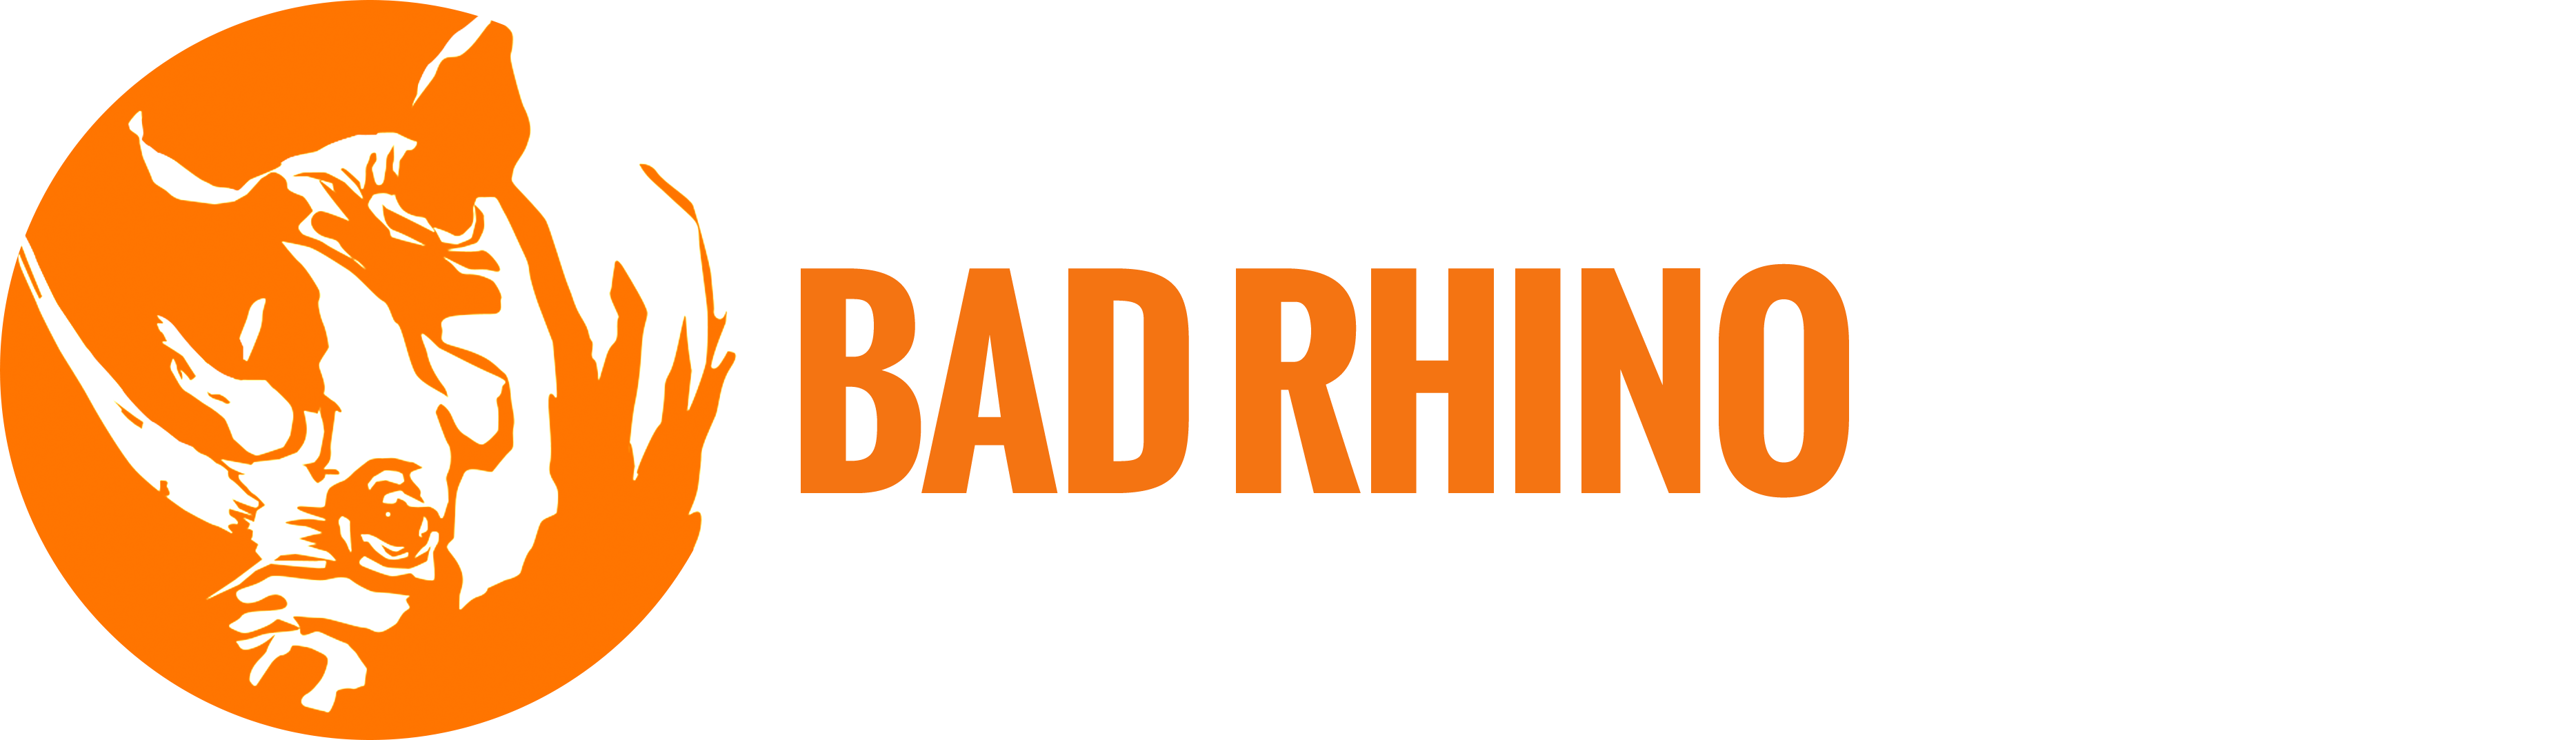 Bad Rhino Games